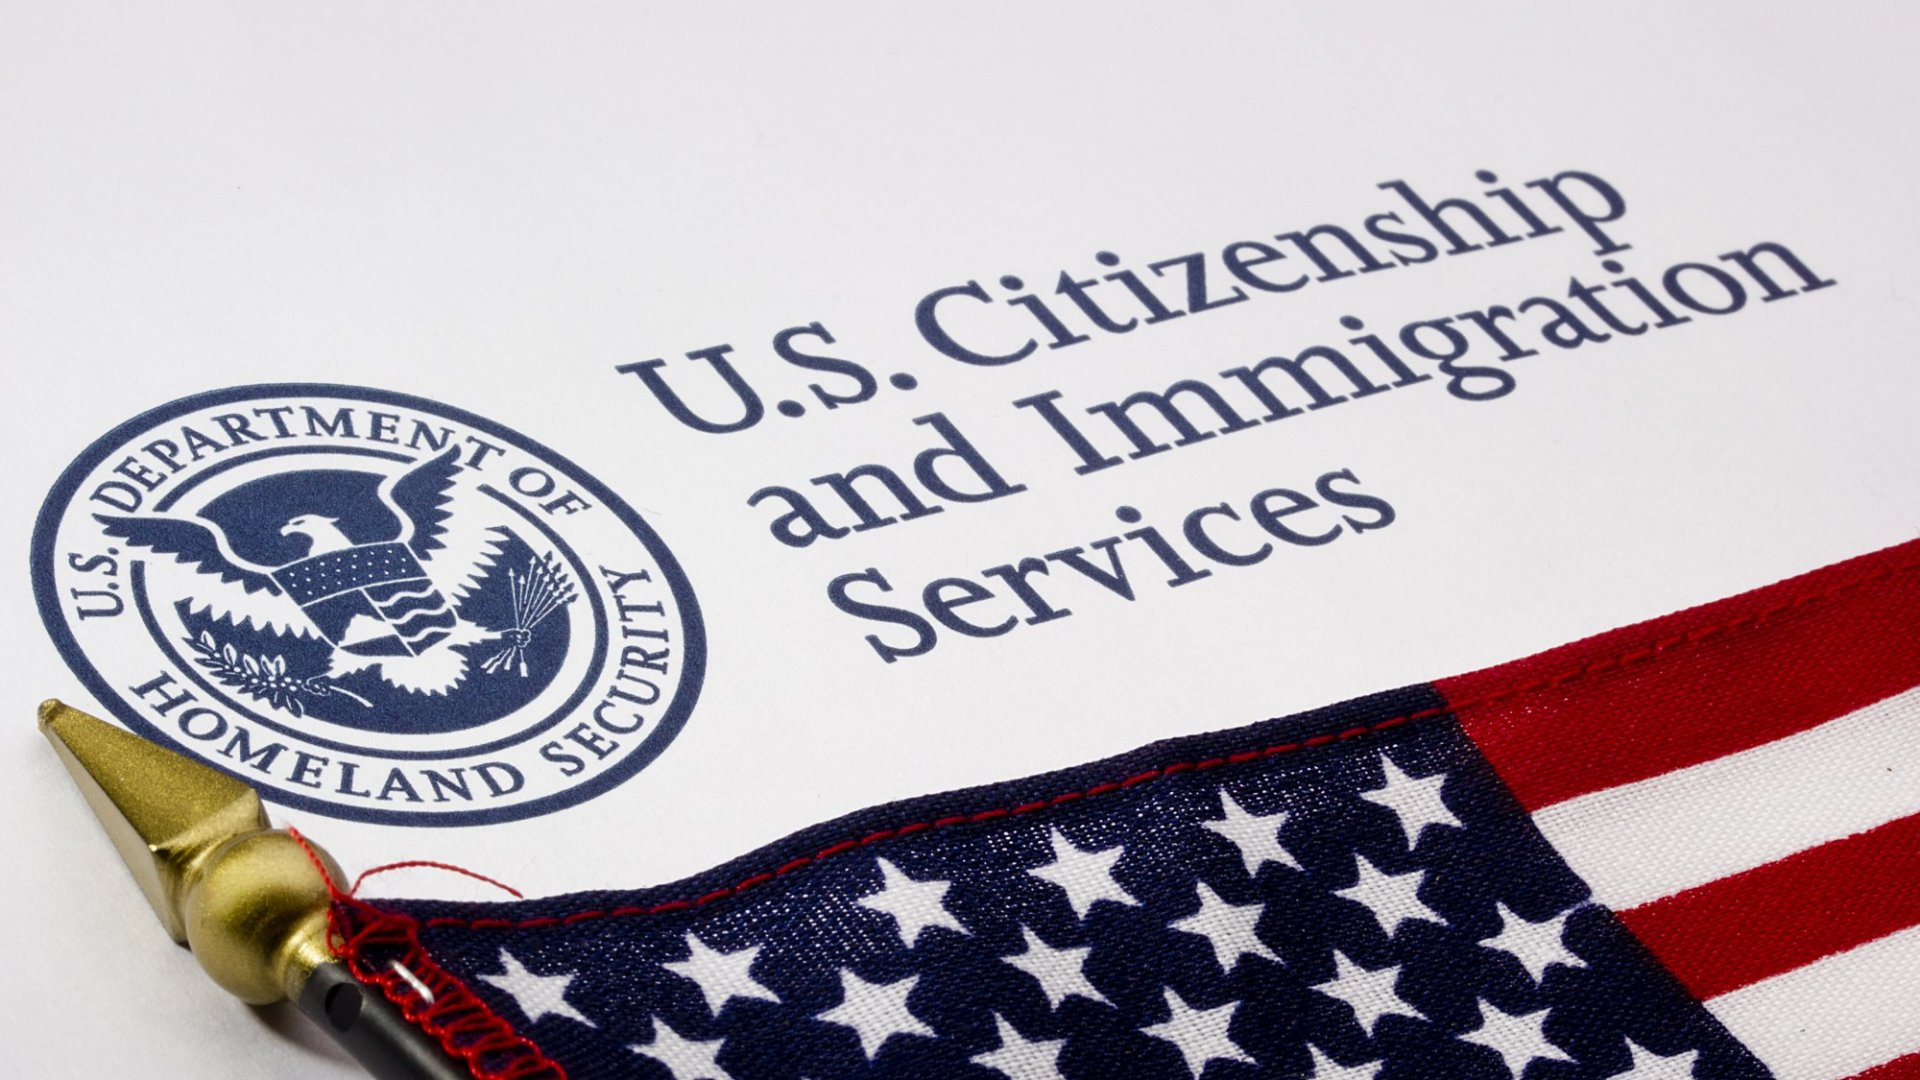 What You Should Know About the H-1B Visa Application Process